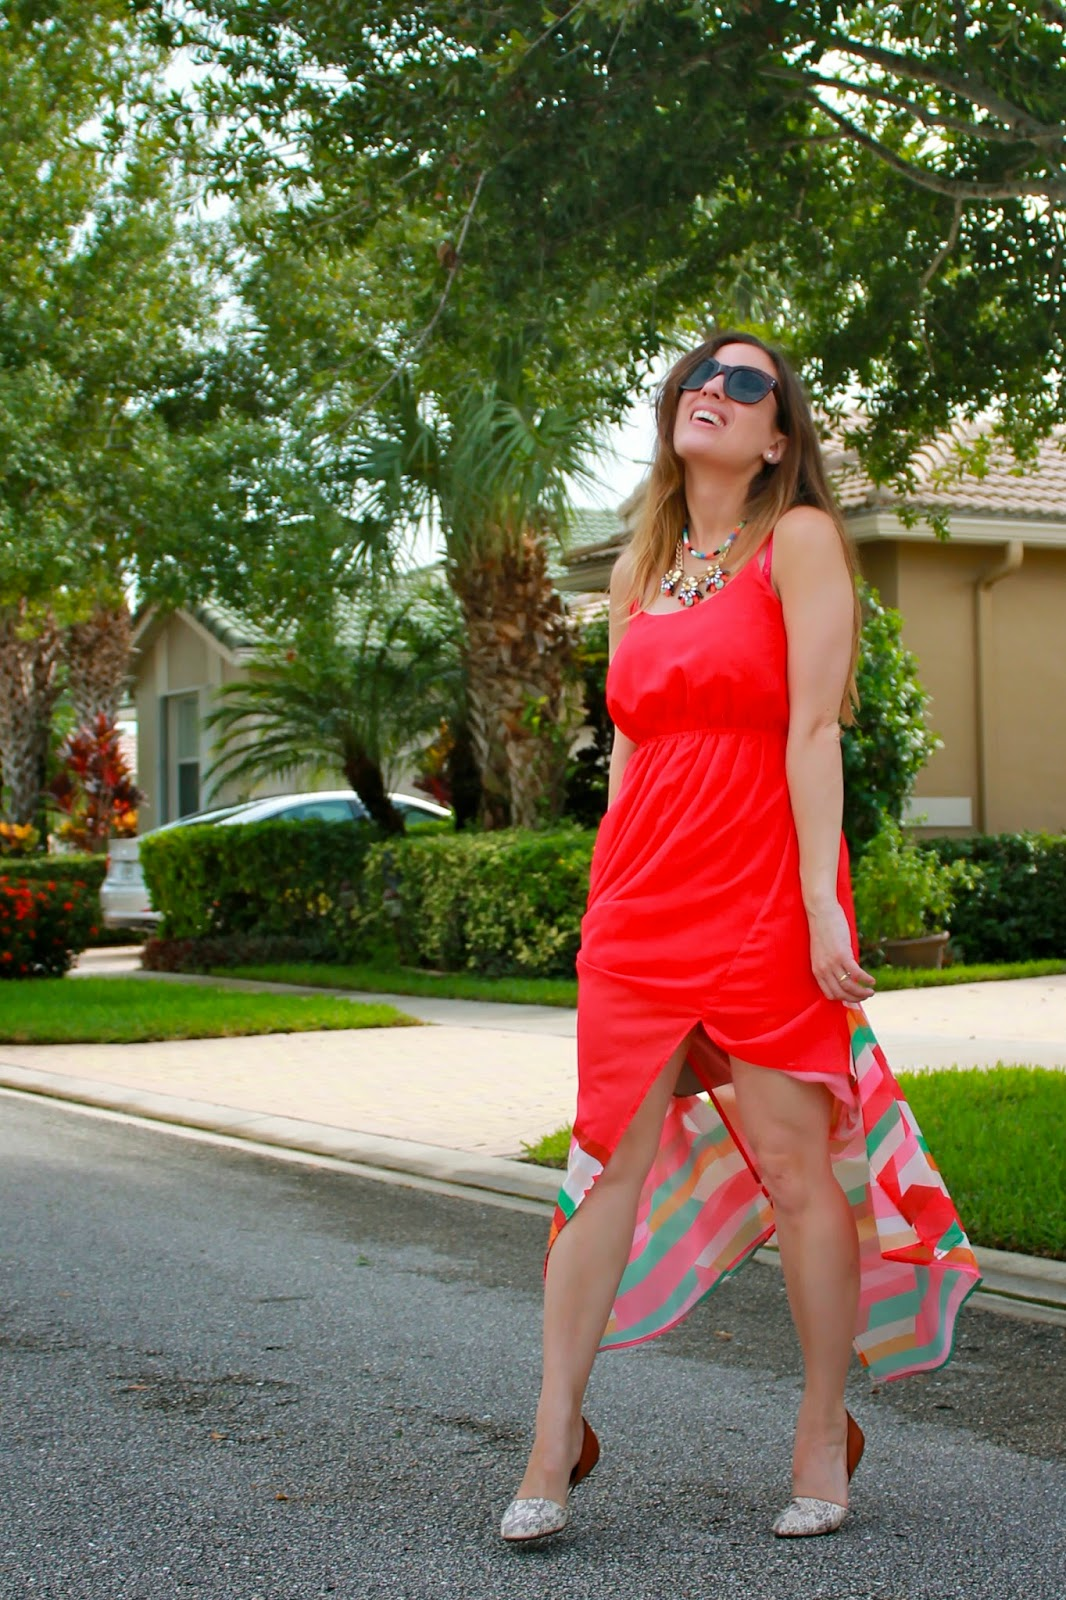 Nordstrom, J.Crew, T.J. Maxx, LF Stores, maxi dress, what i wore, ootd, miami blogger, Miami fashion blogger, blogger style